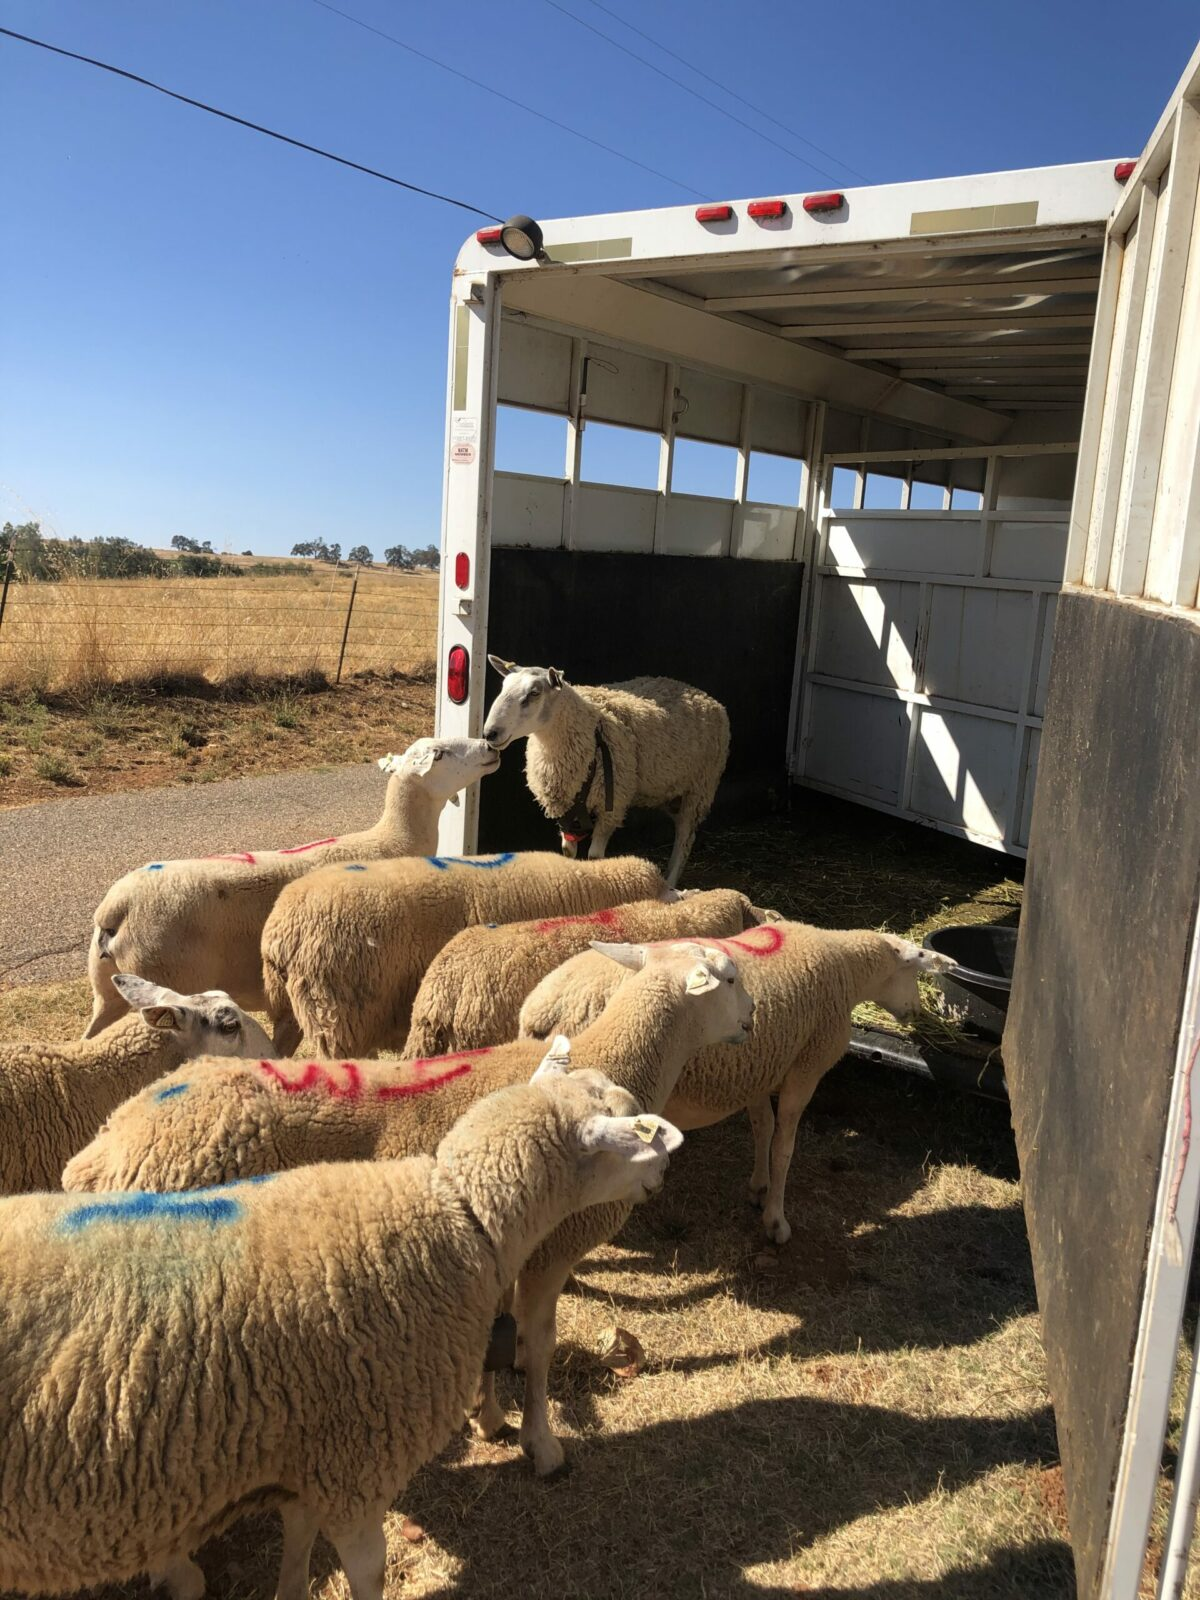 sheep being loaded into trailer